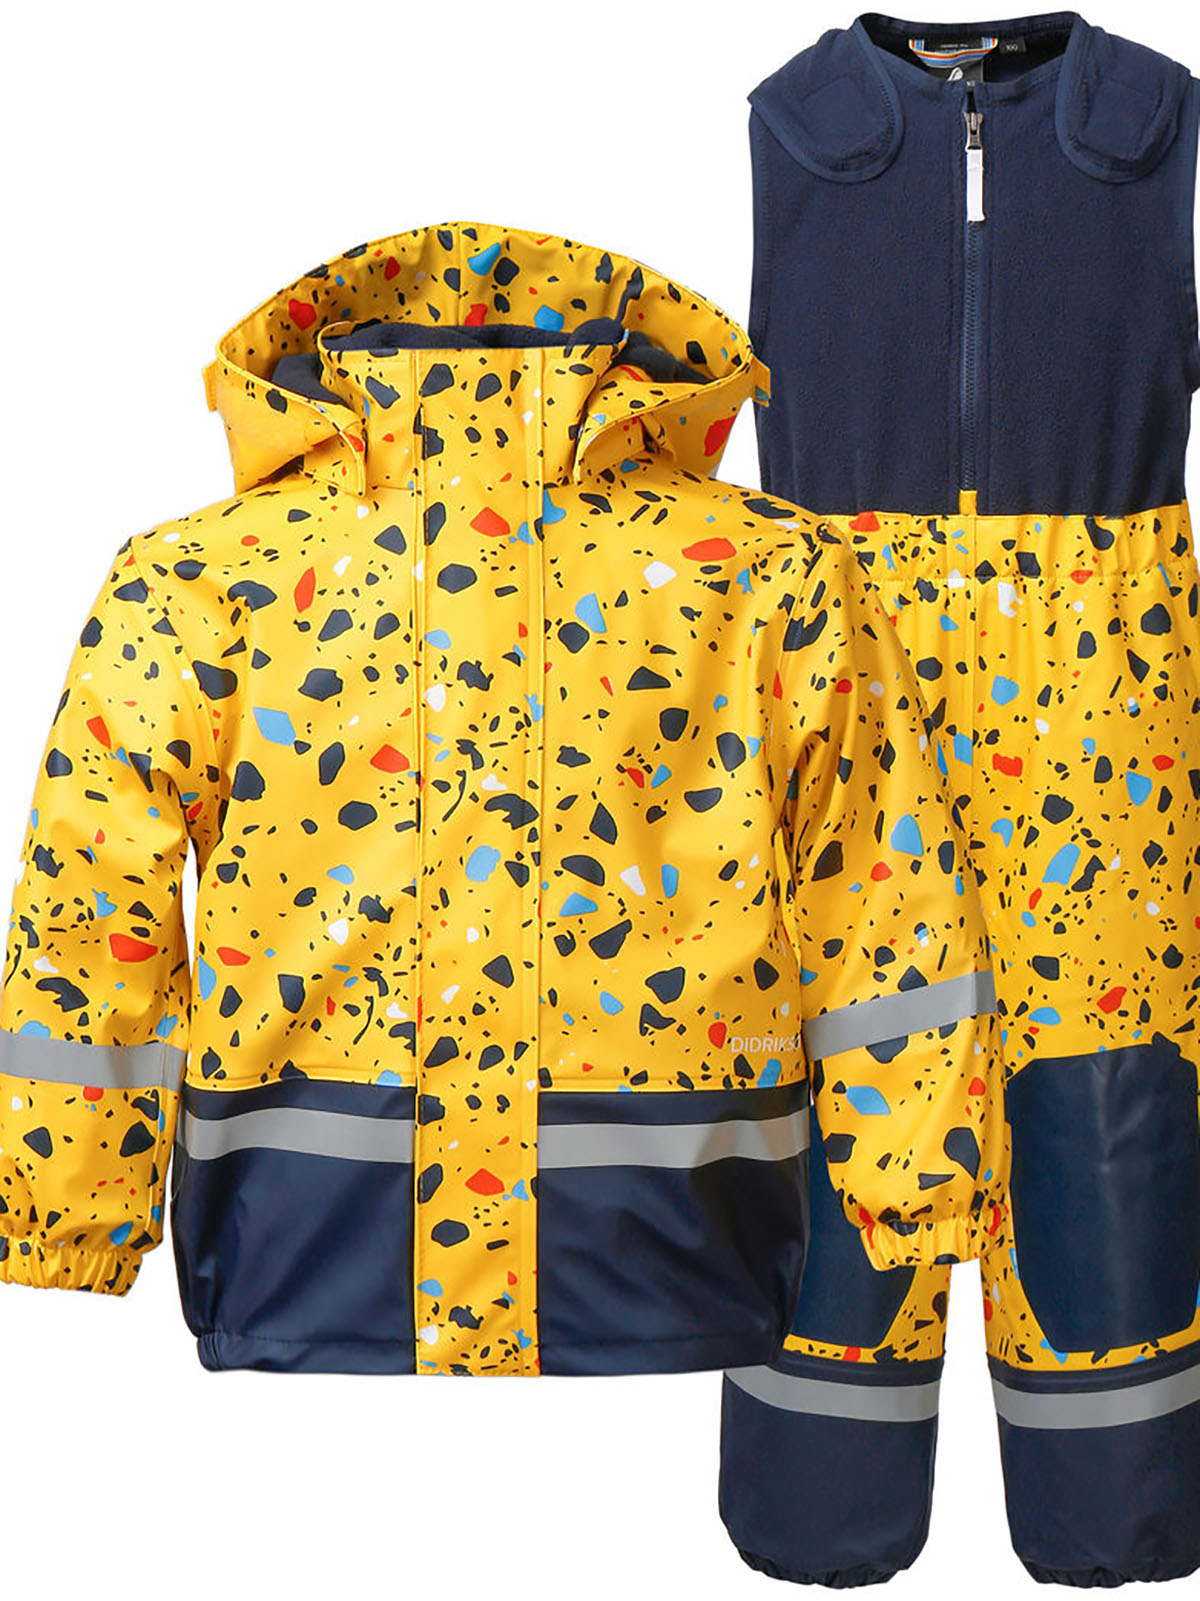 Waterproof and cold-proof down jacket children's suit